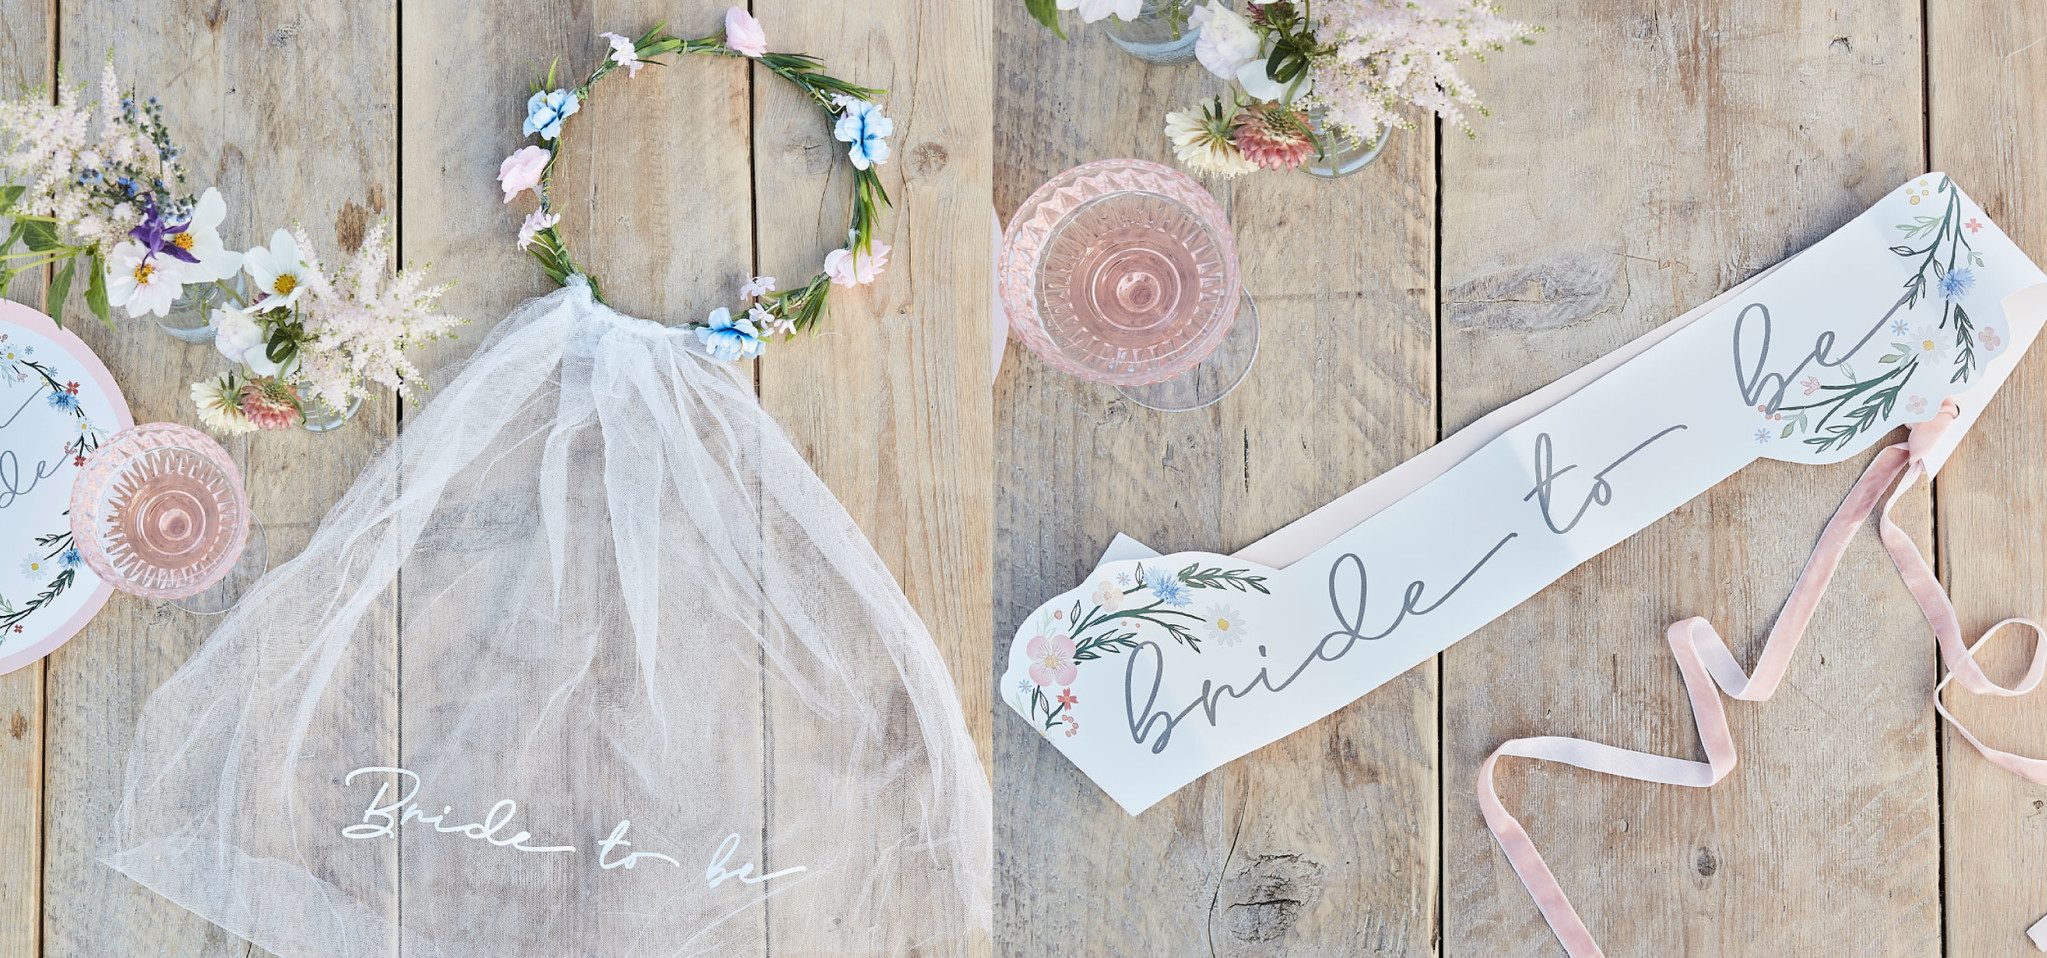 Bride To Be accessoires